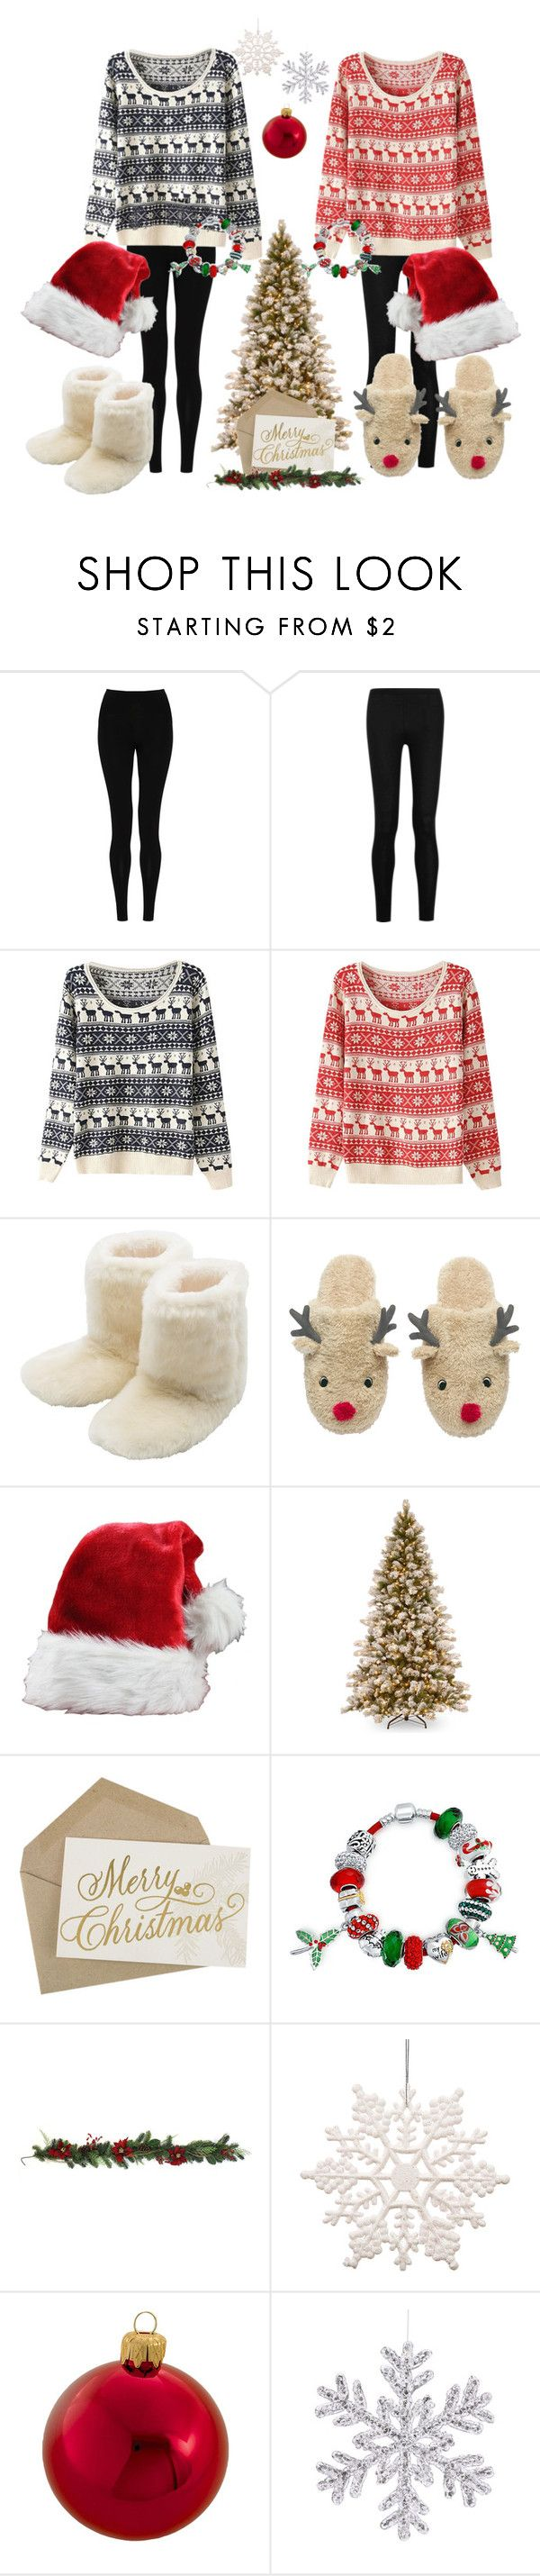 """matching Christmas sweaters with your best friend"" by ary-polyvore-outfits ❤ liked on Polyvore featuring M&S Collection, Donna Karan, M&Co, Bling Jewelry and Kurt Adler"